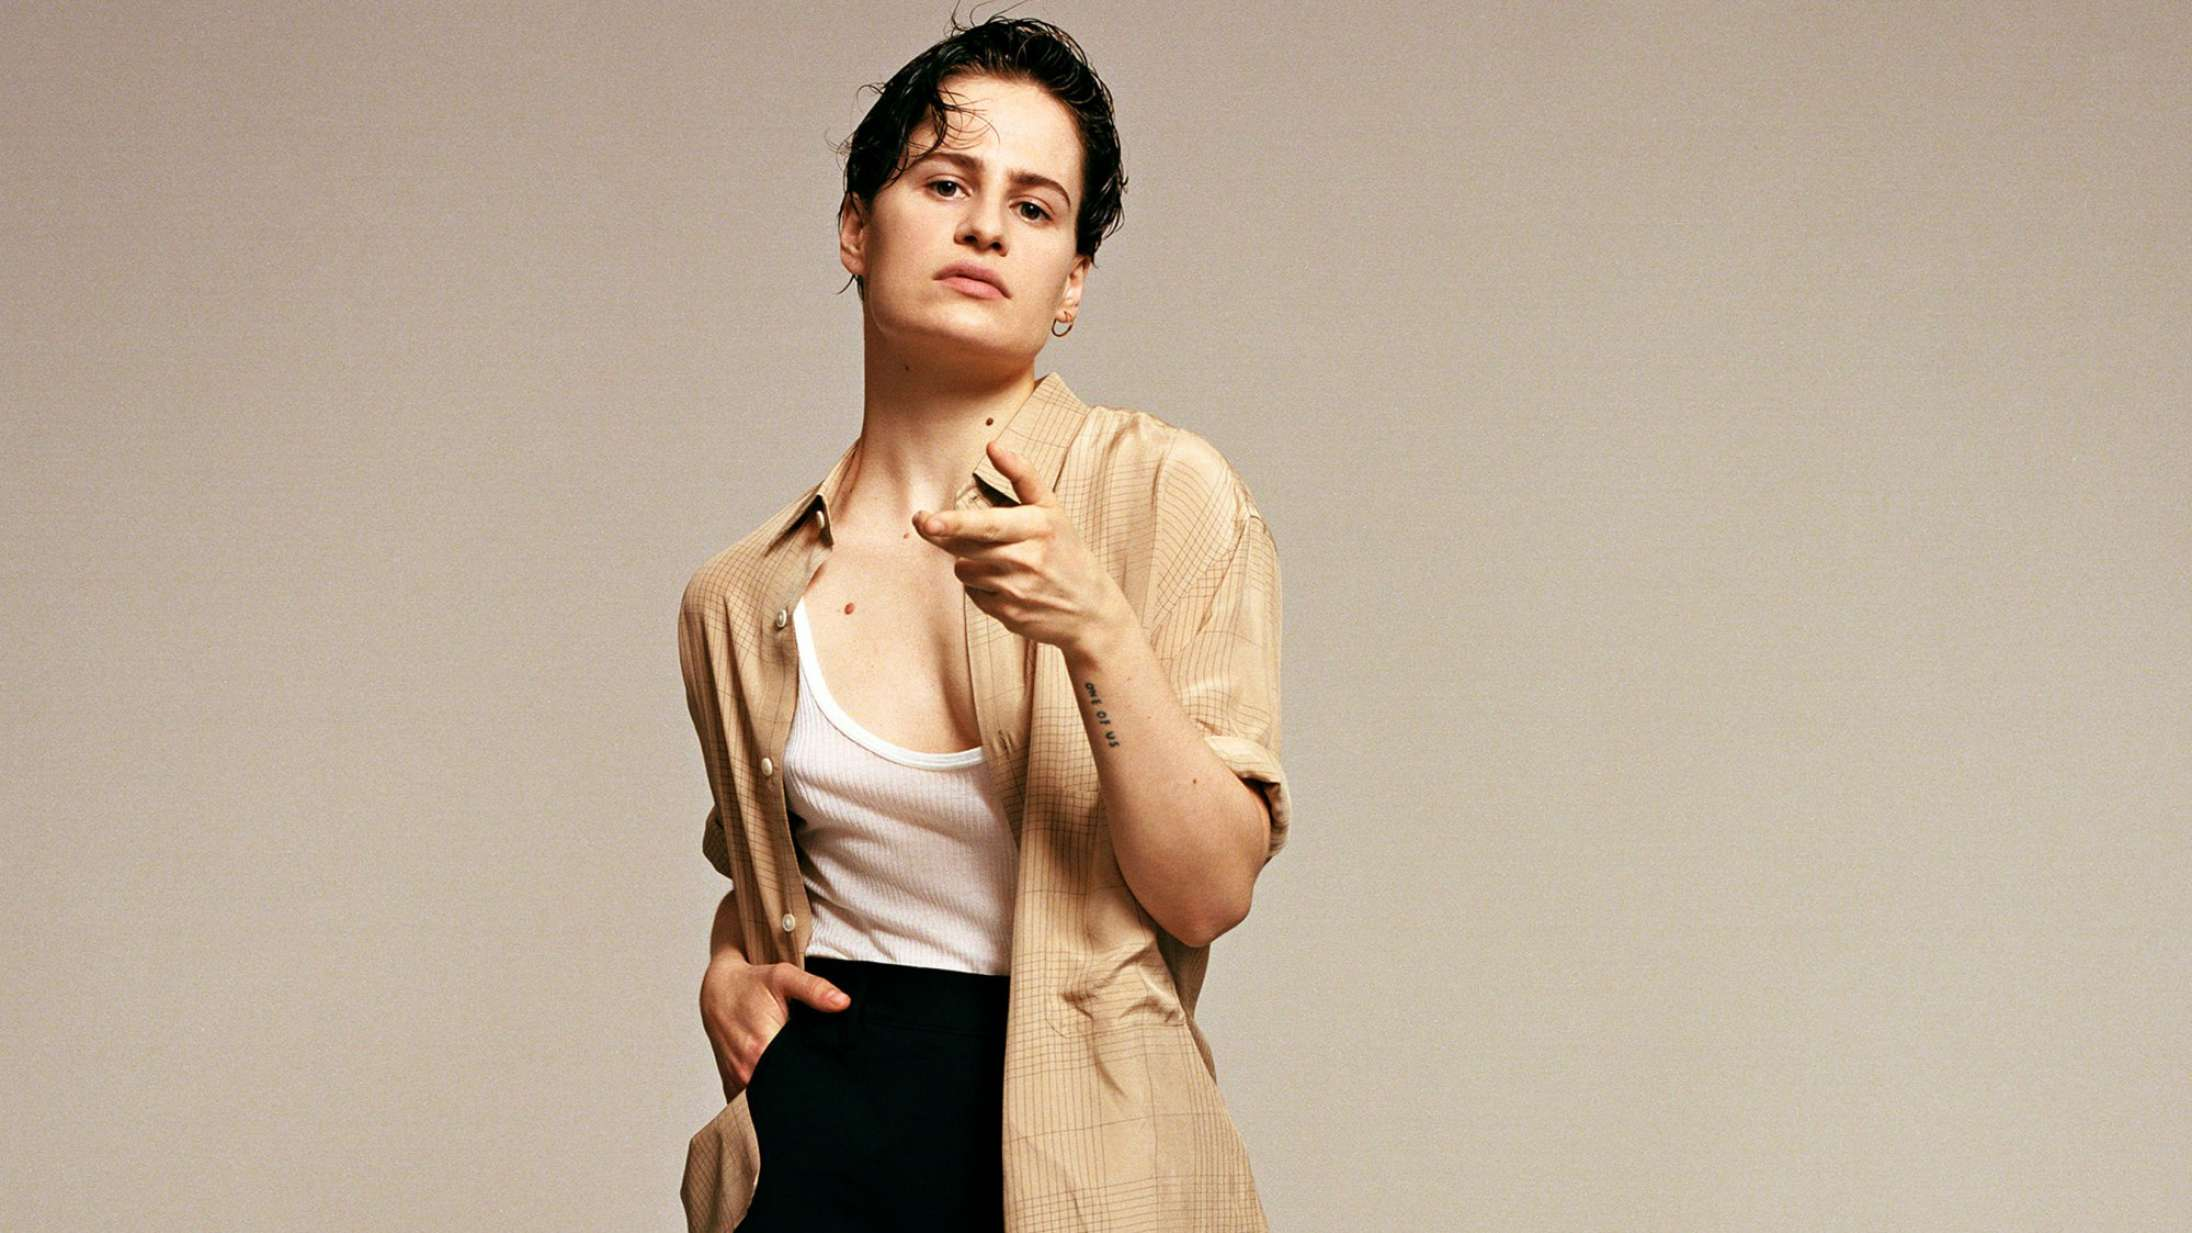 Christine and the Queens deler ømt cover af The Weeknd-hit fra stuegulvet